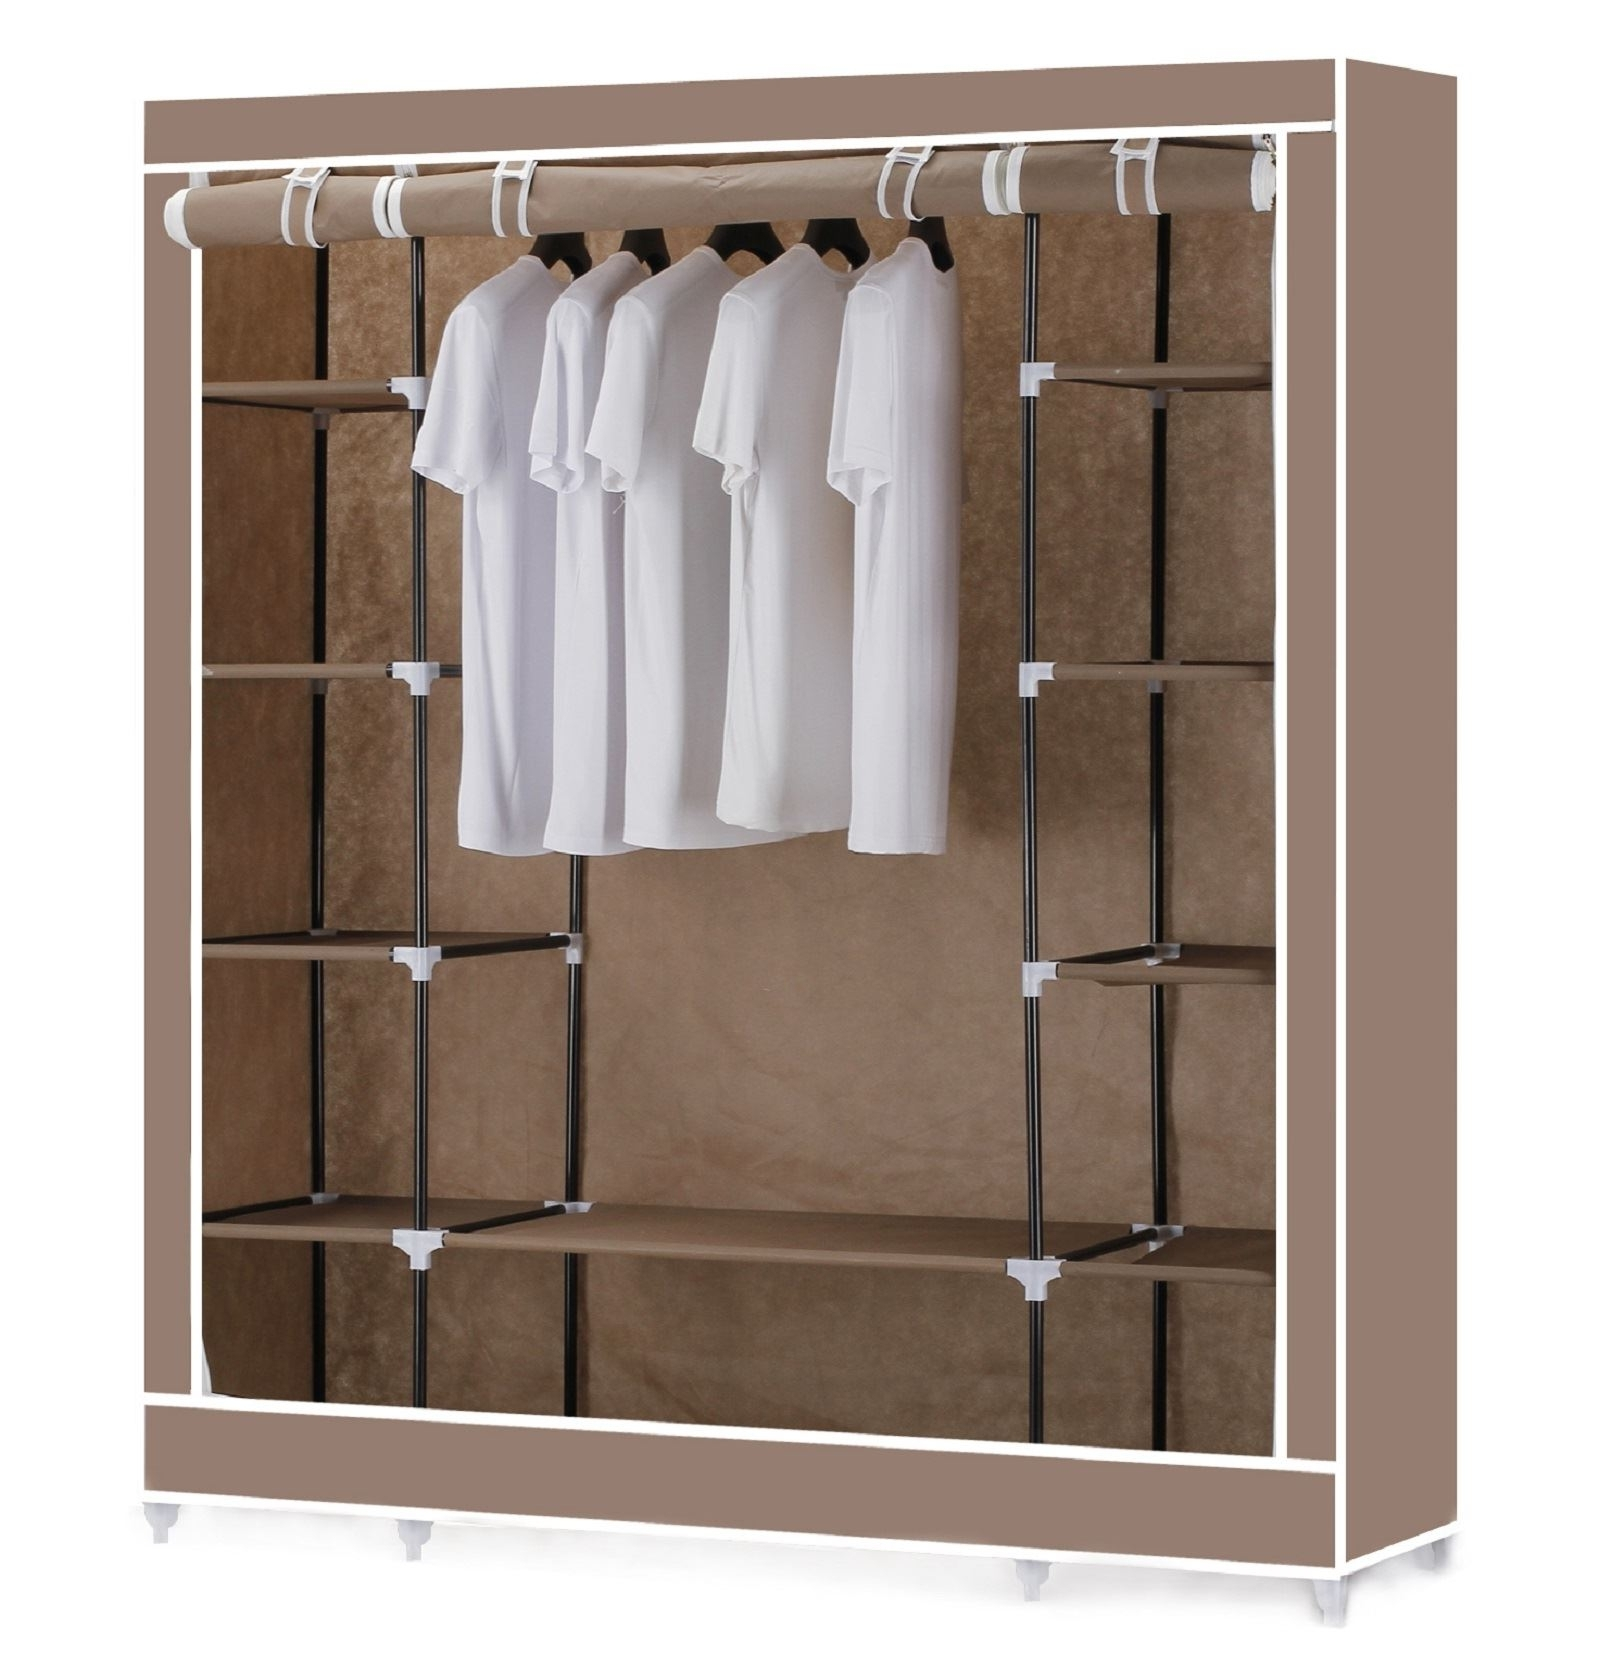 2017 Double Hanging Rail For Wardrobes Inside Vinsani Triple Canvas Clothes Wardrobe Hanging Rail With Storage (View 7 of 15)